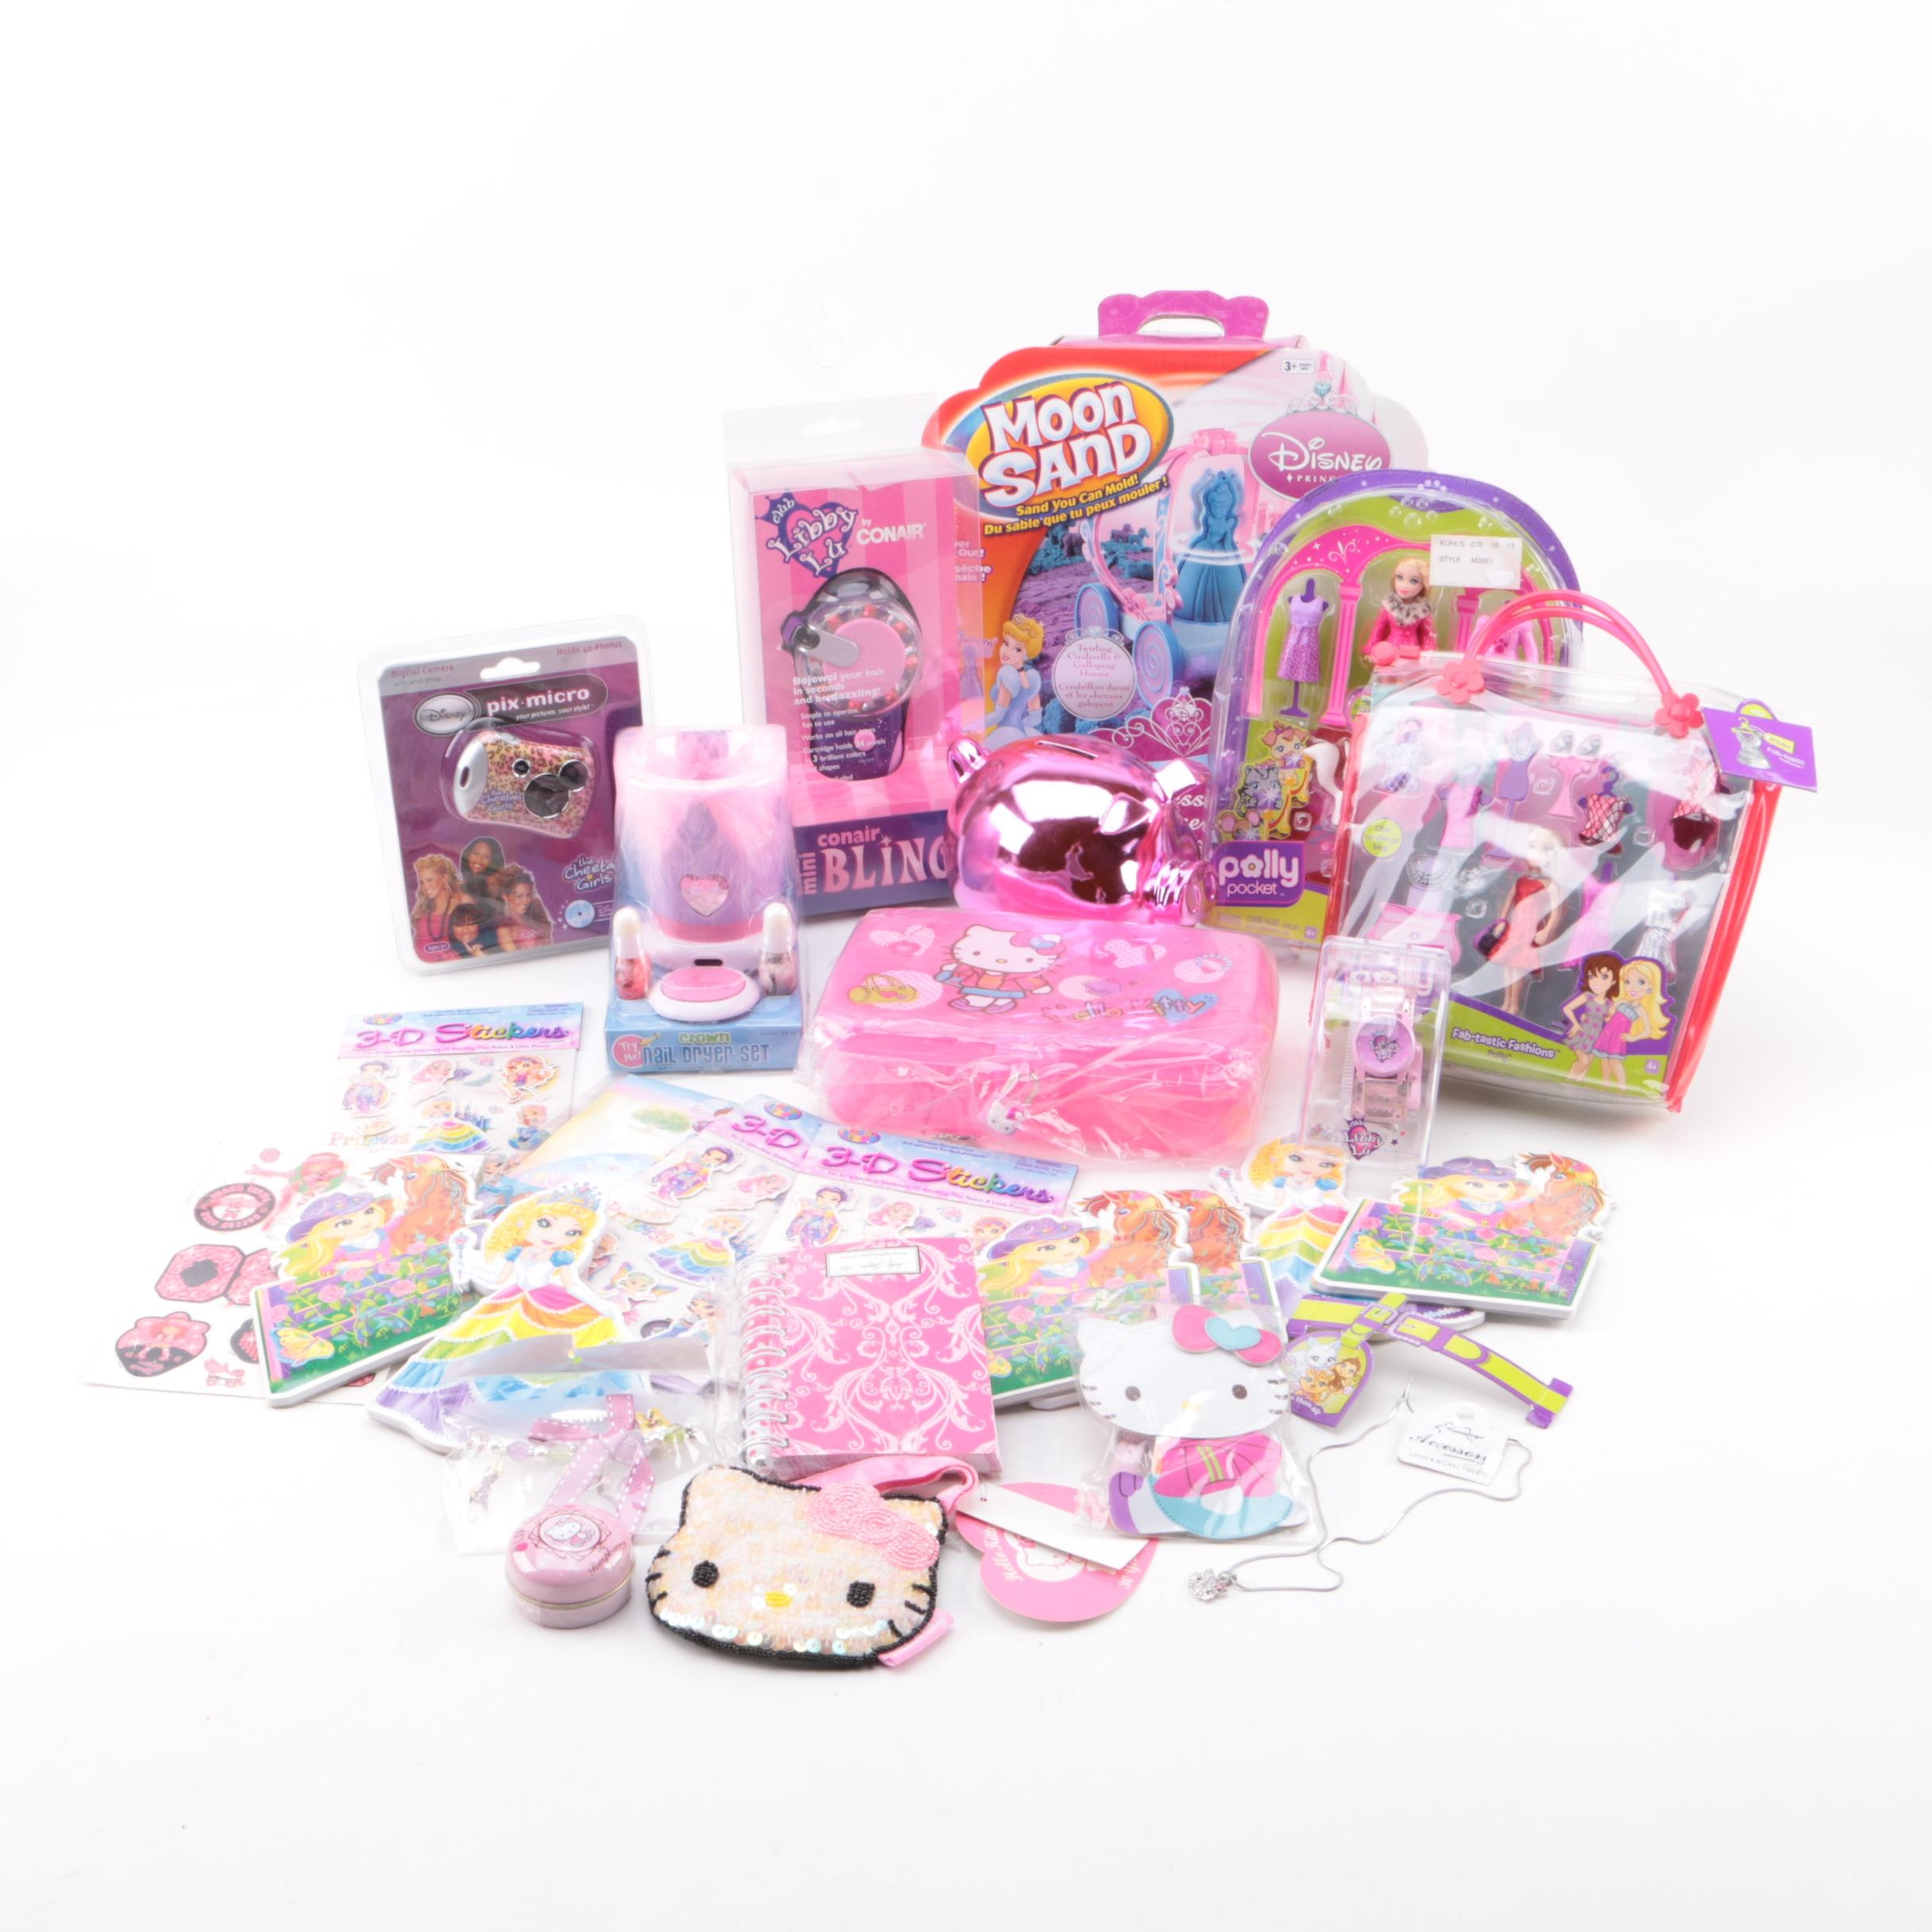 Polly Pocket, Hello Kitty, Club Libby Lu and Other Dolls and Toys